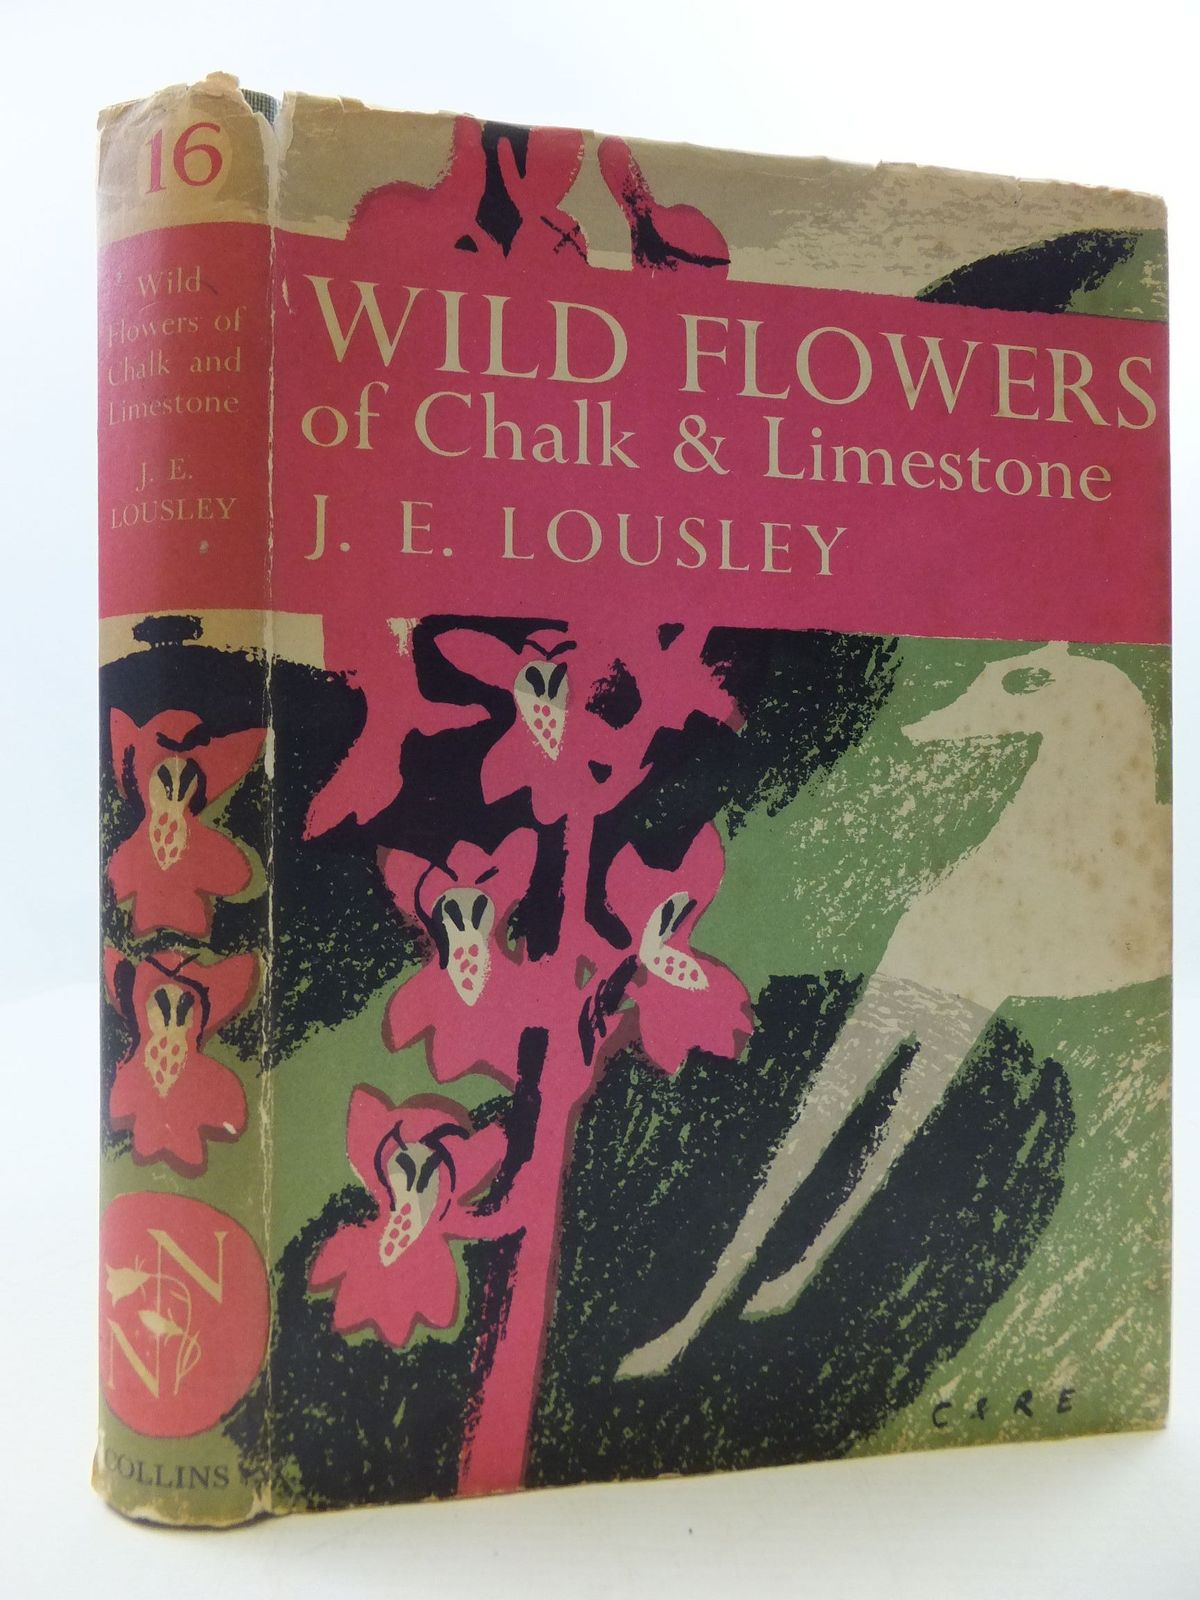 Photo of WILD FLOWERS OF CHALK & LIMESTONE (NN 16) written by Lousley, J.E. published by Collins (STOCK CODE: 2110229)  for sale by Stella & Rose's Books